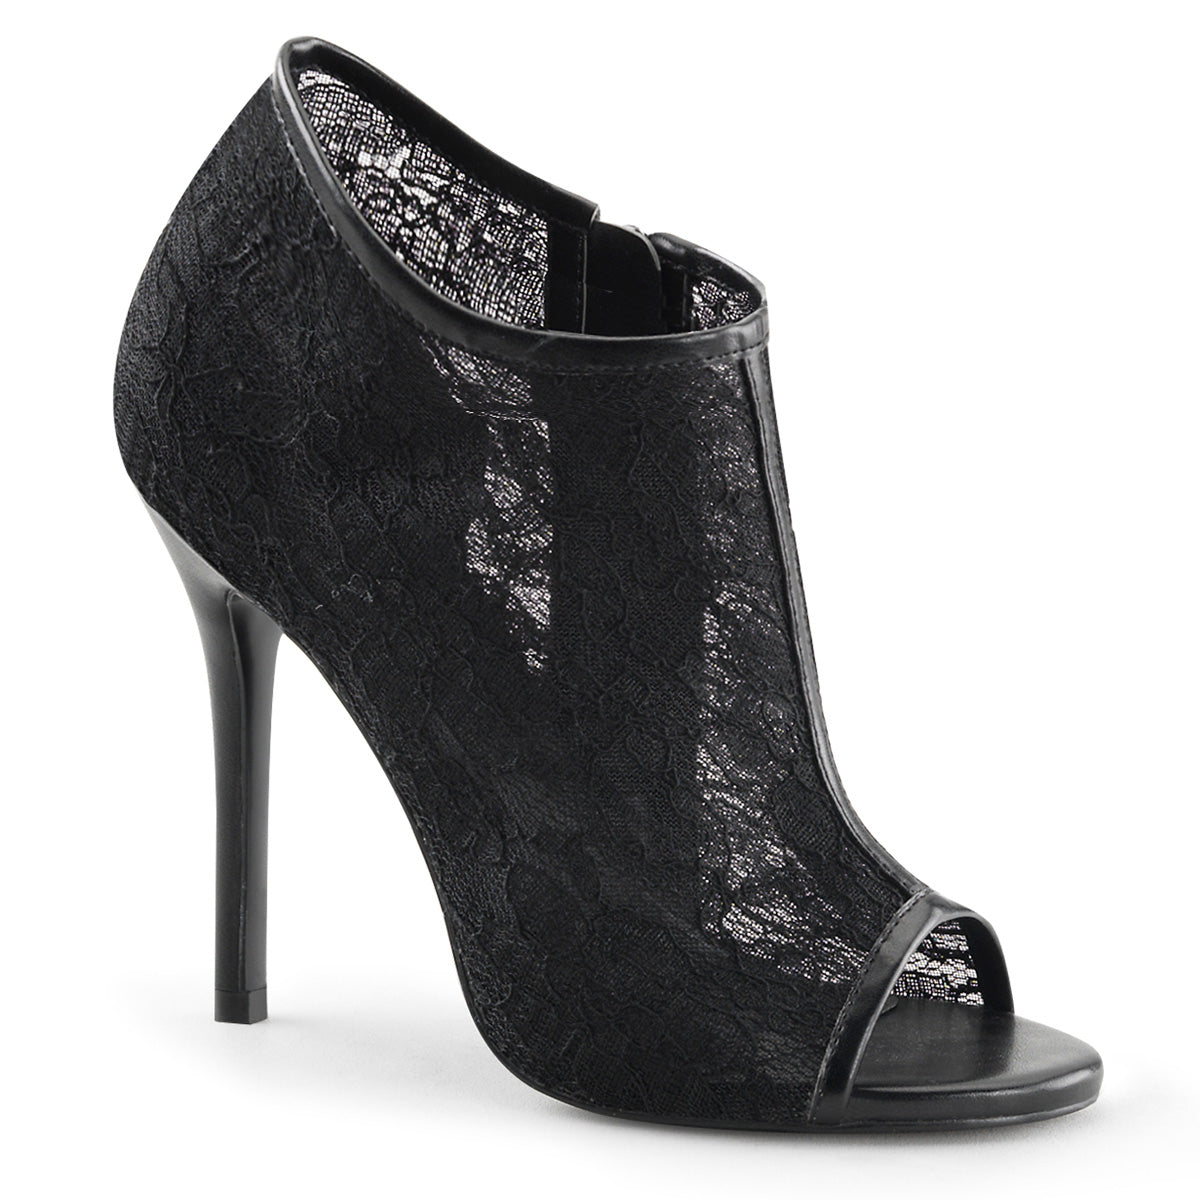 "5"" Heel, Open Toe Bootie w/ Lace Overlay Lace Mesh"